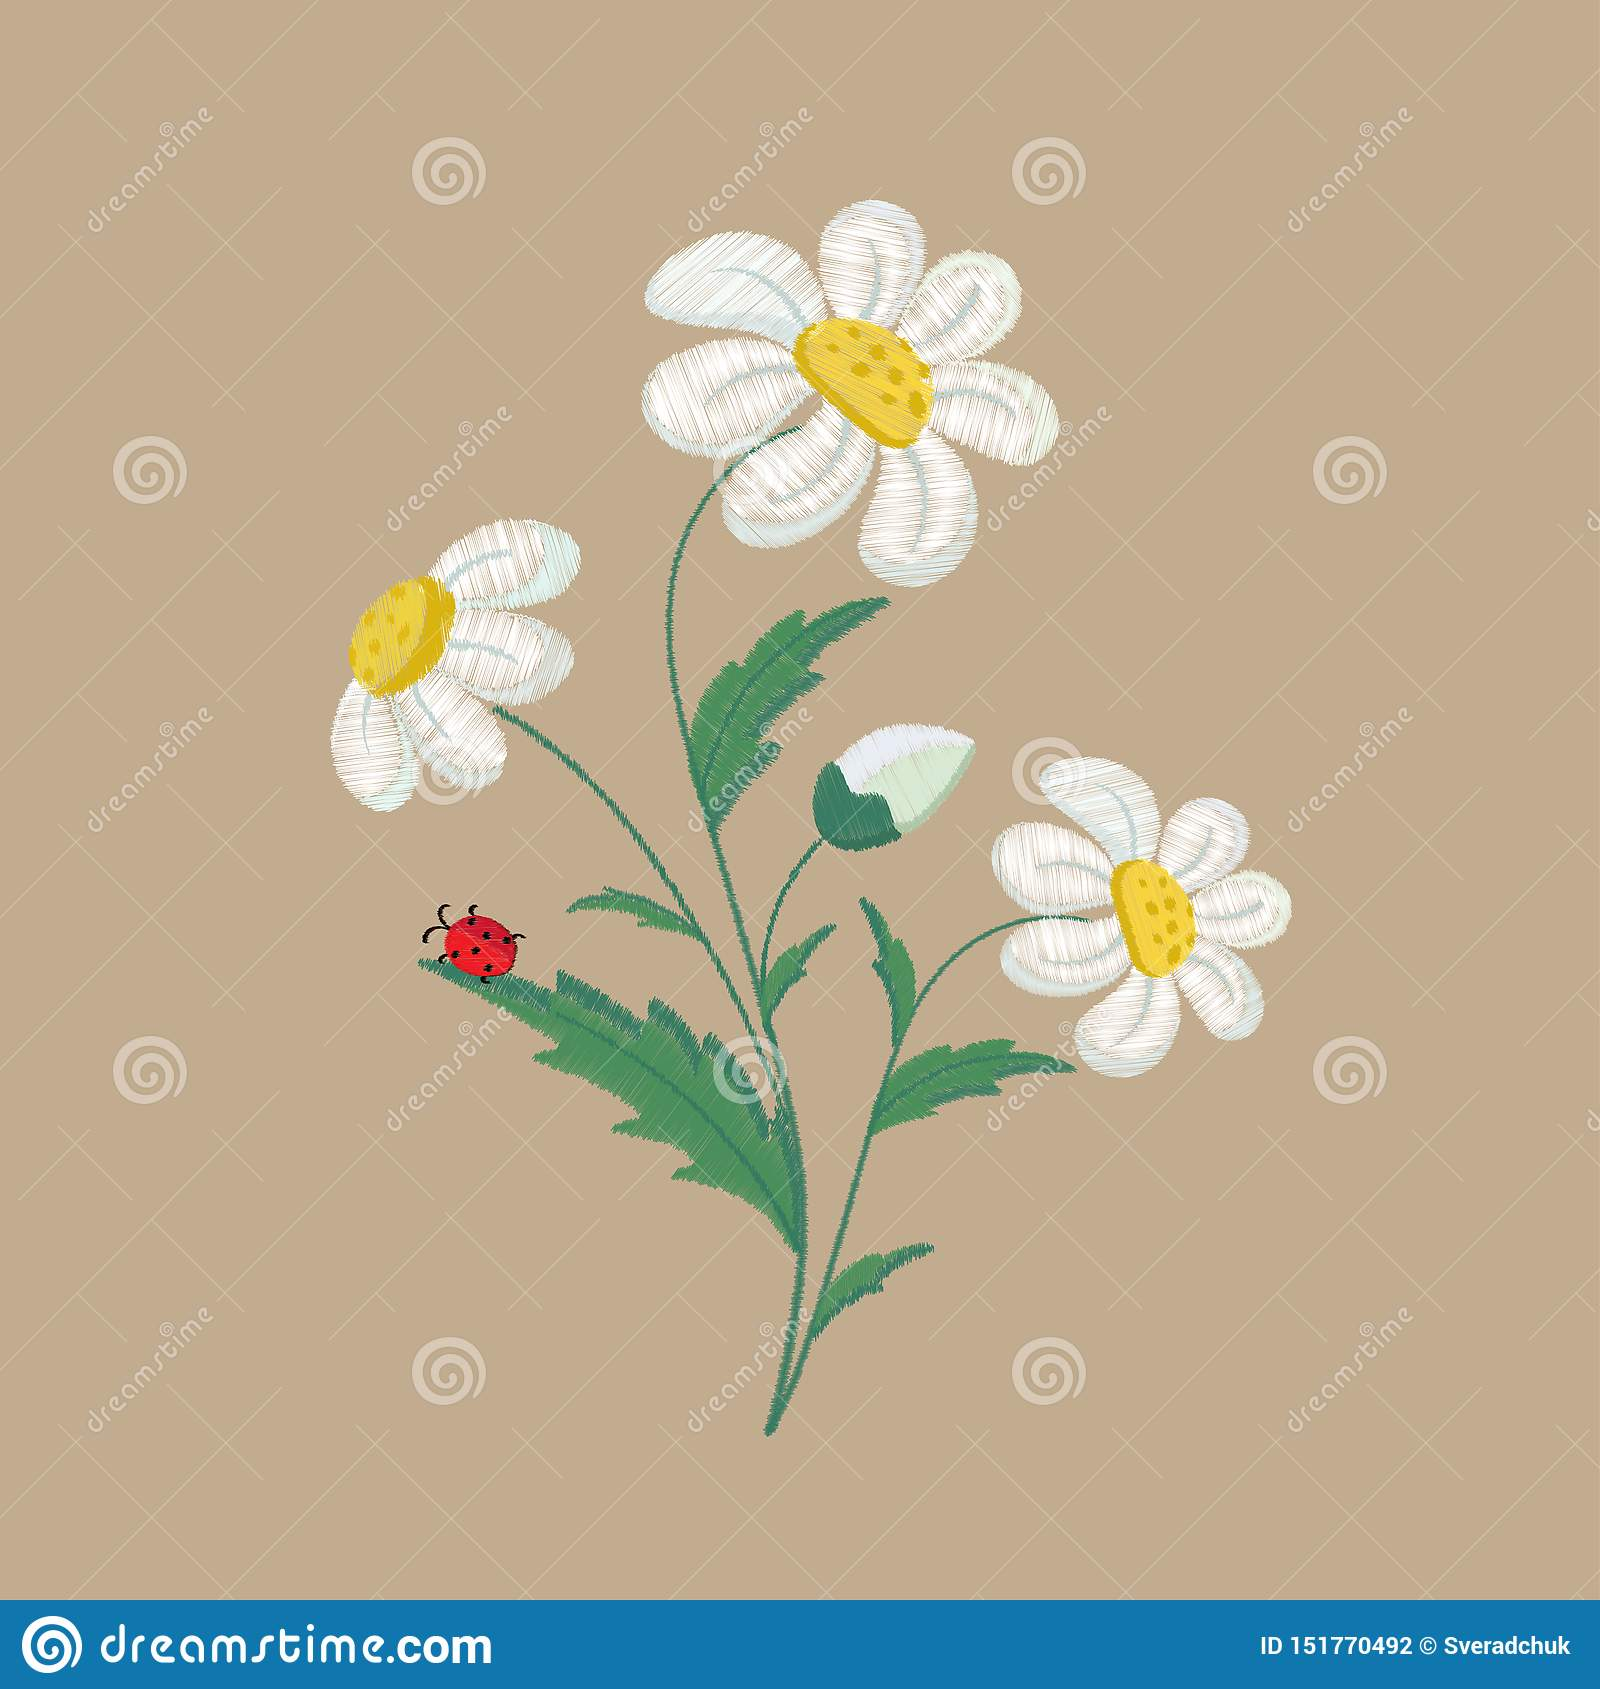 Embroidered chamomile flowers on a brown background. Vector illustration